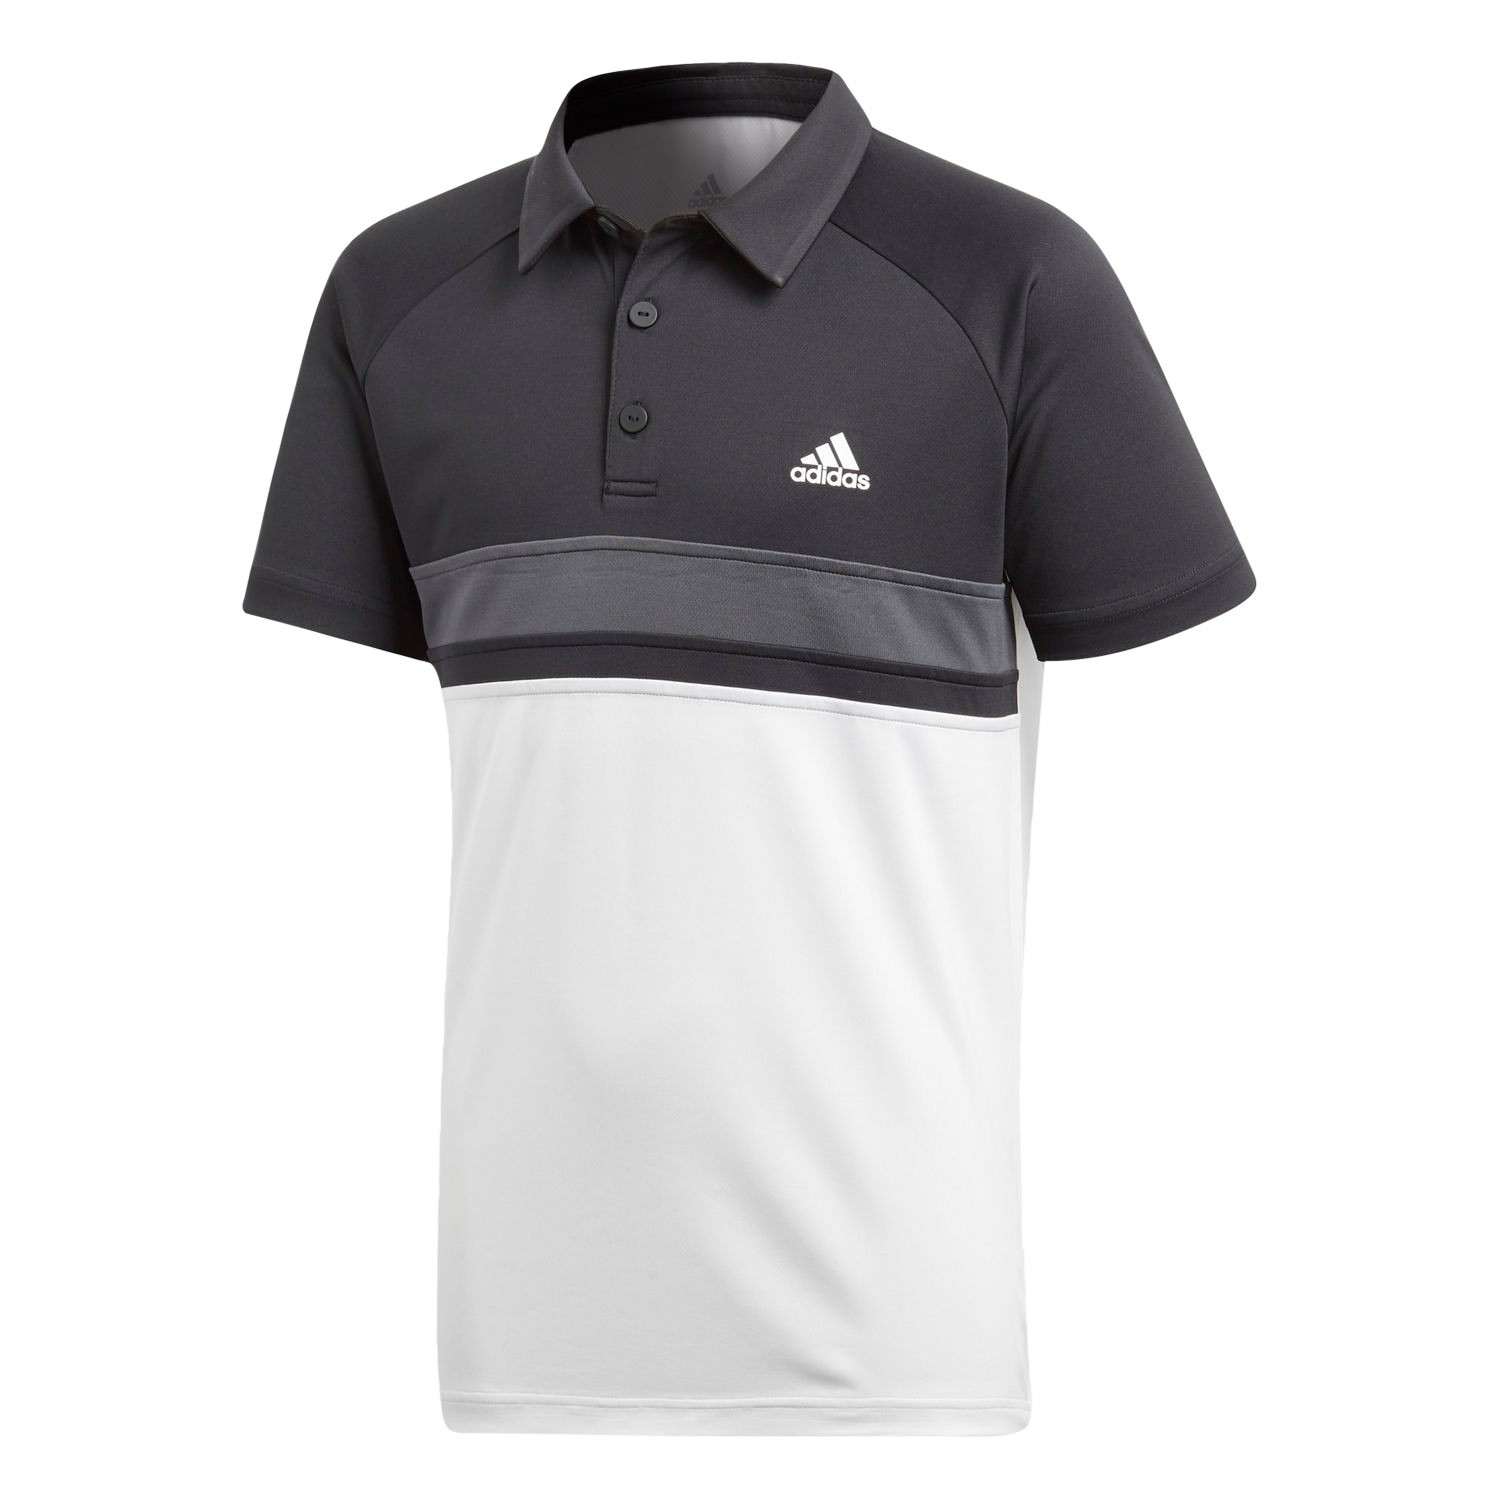 d841a810f2a Adidas Club Colourblock Kids Boys Tennis Polo Shirt - White/Black ...